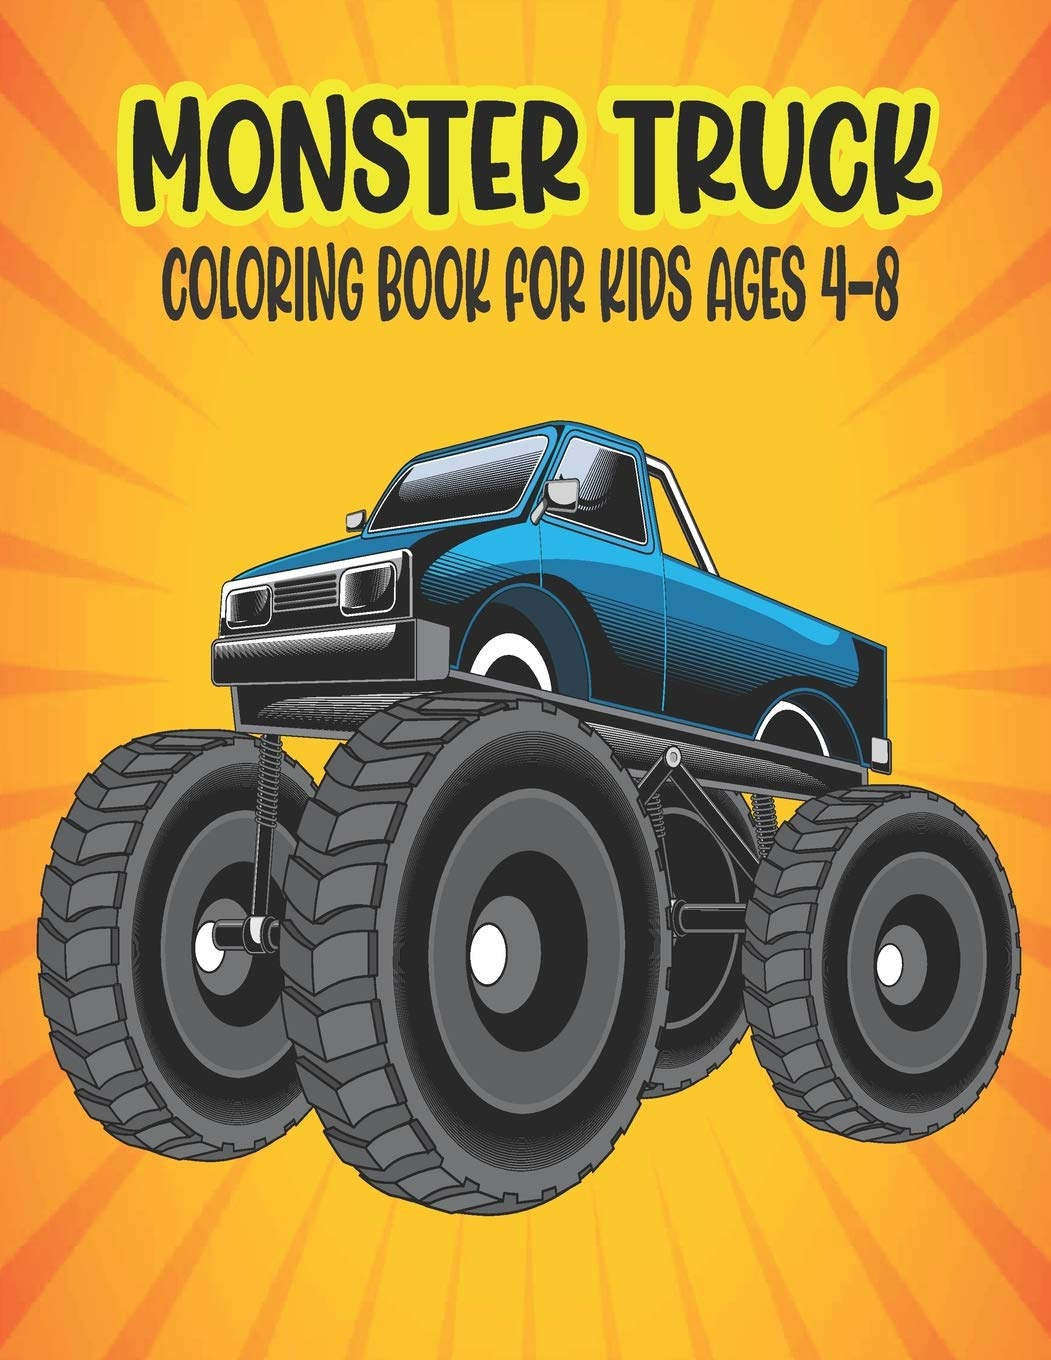 Monster Truck Coloring Book For Kids Ages 4 8 Amazing Coloring Book For Kids Ages 4 8 Filled With 50 Pages Of Monster Trucks Monster Truck Coloring Super Activity Books For Preschooler Press